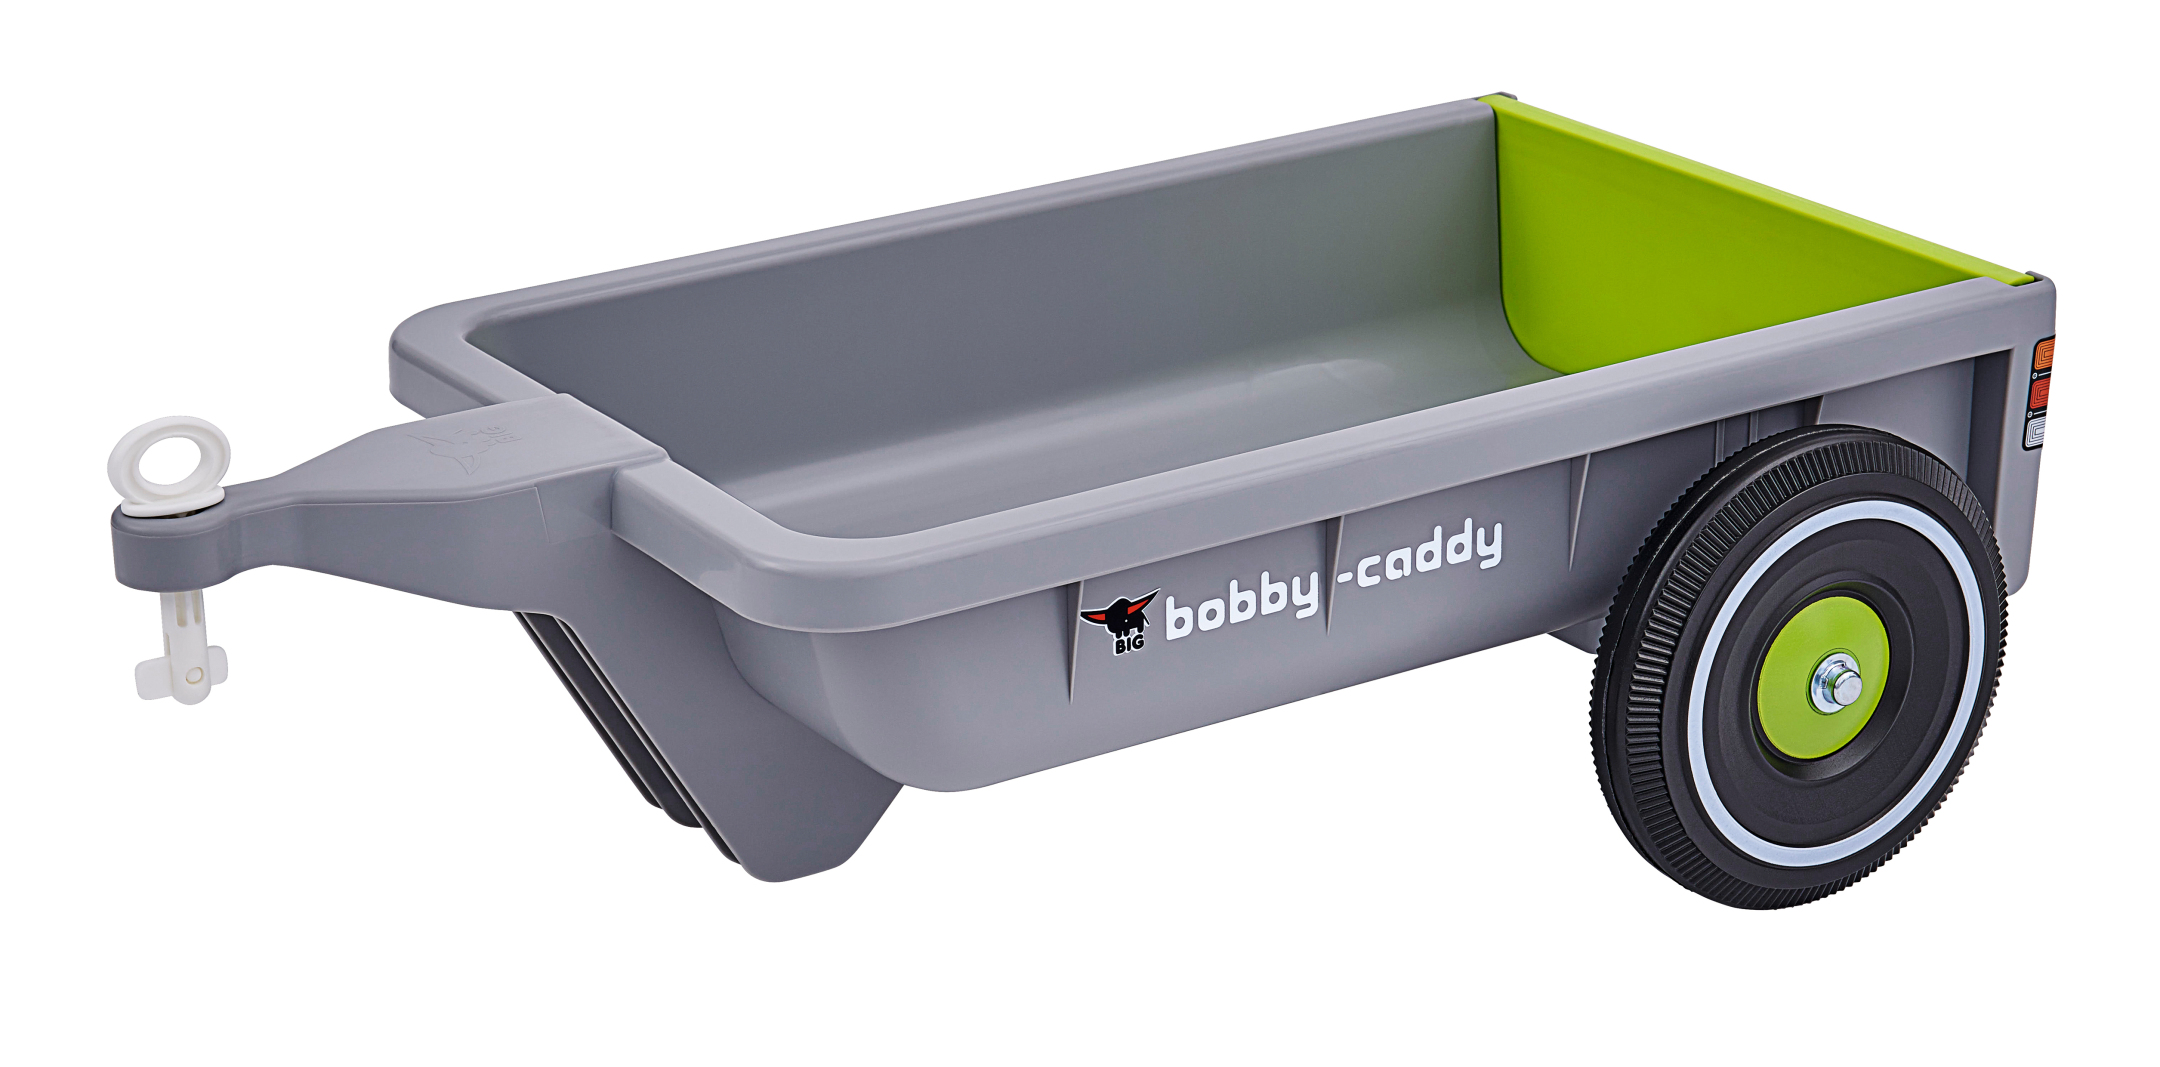 big bobby caddy anhänger